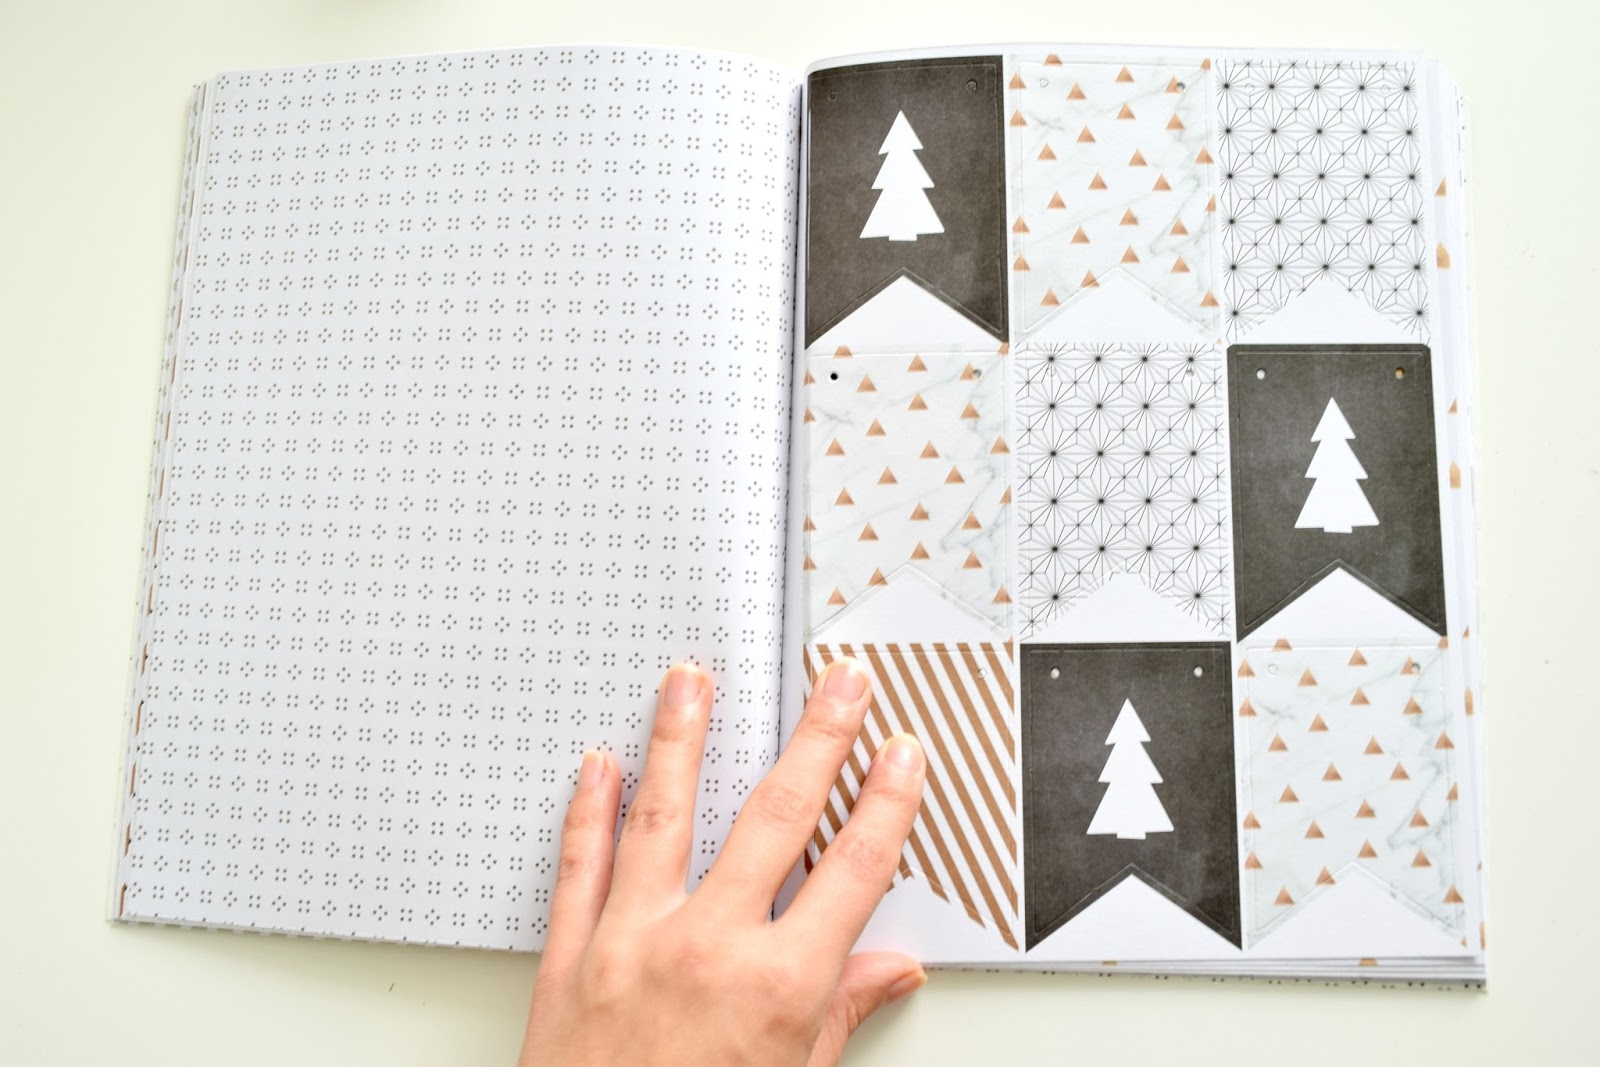 Christmas notebook with paper decorations.